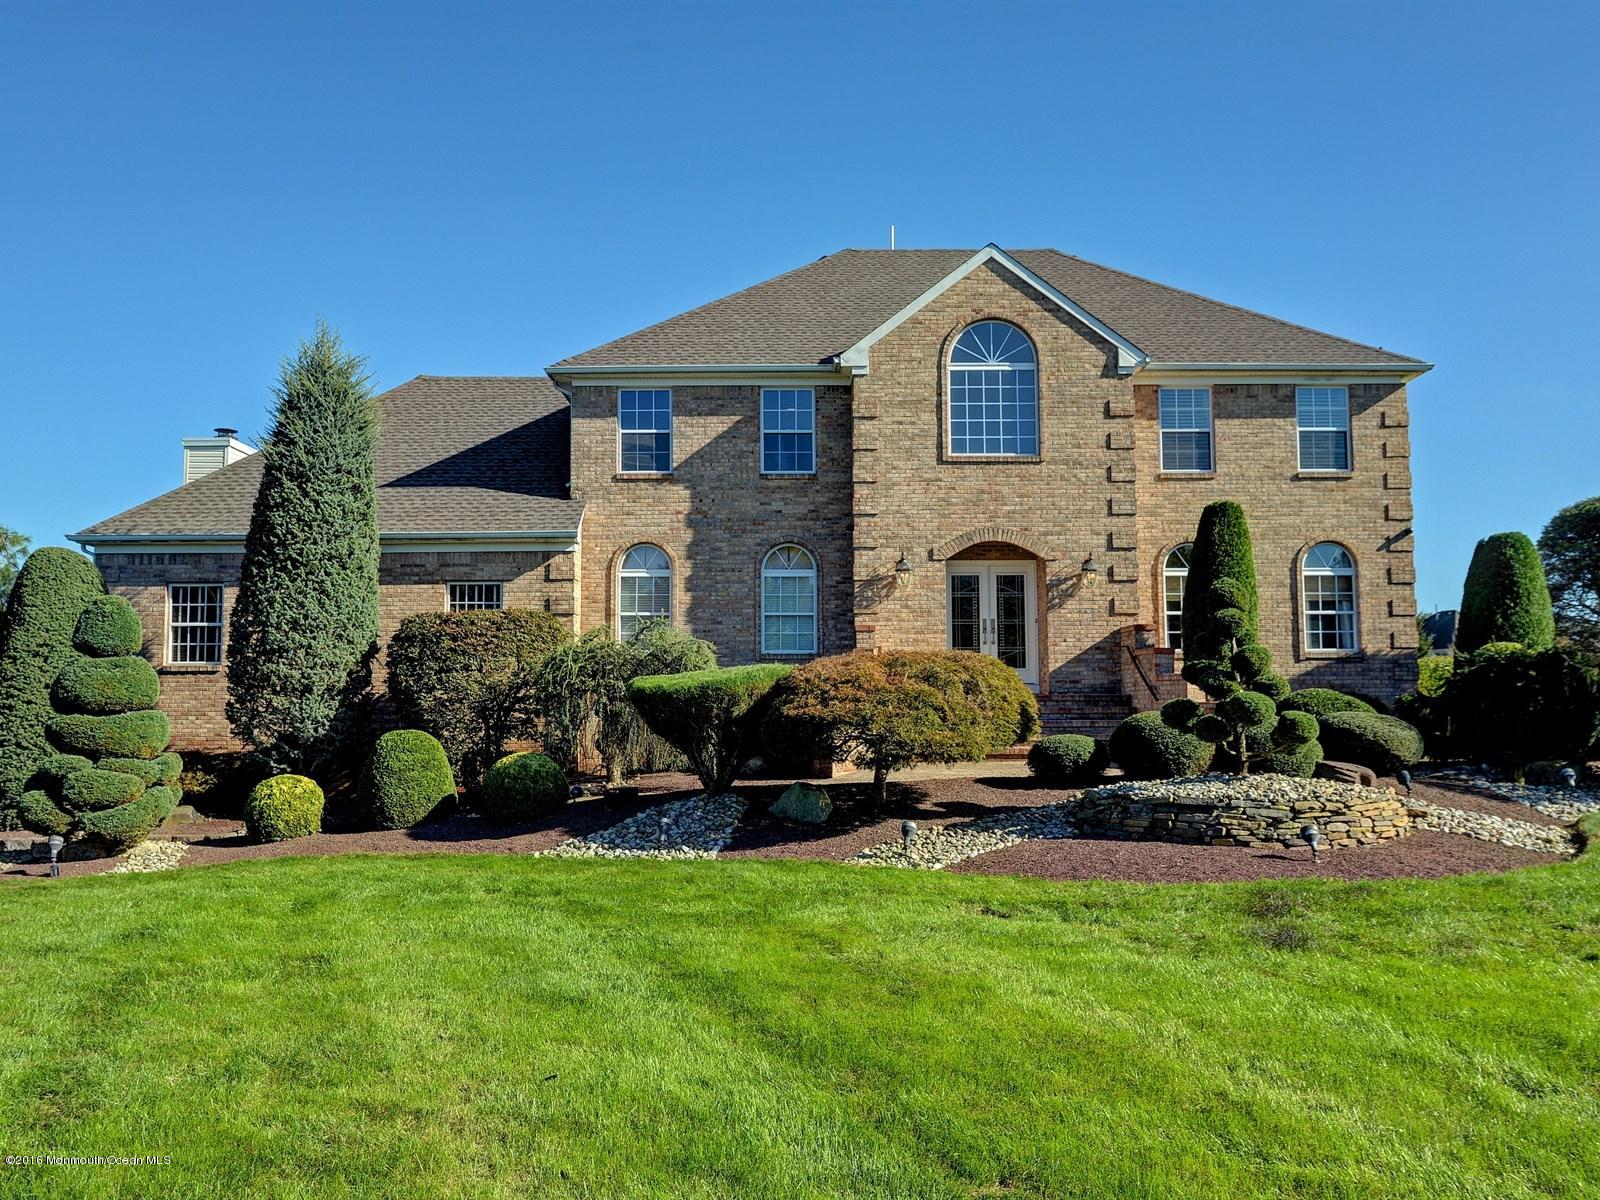 Photo of home for sale at 21 Regency Way Way, Manalapan NJ